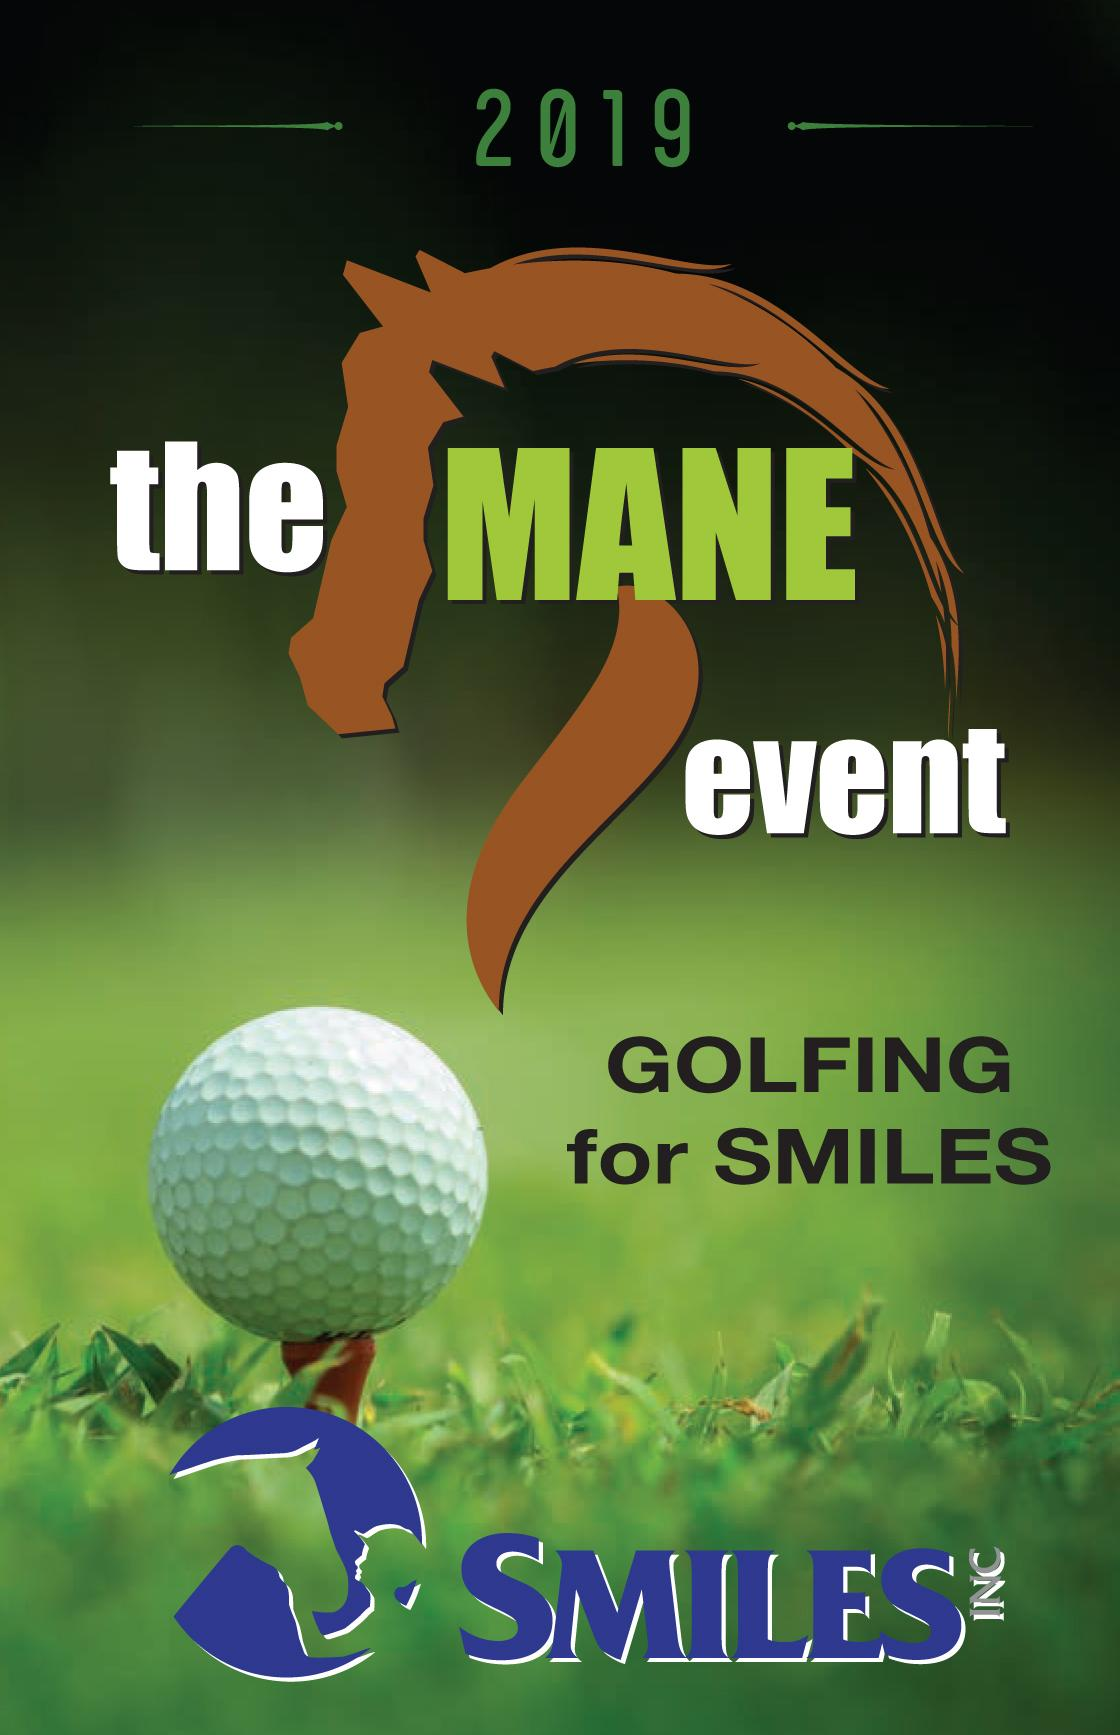 The Mane Event Golfing for SMILES